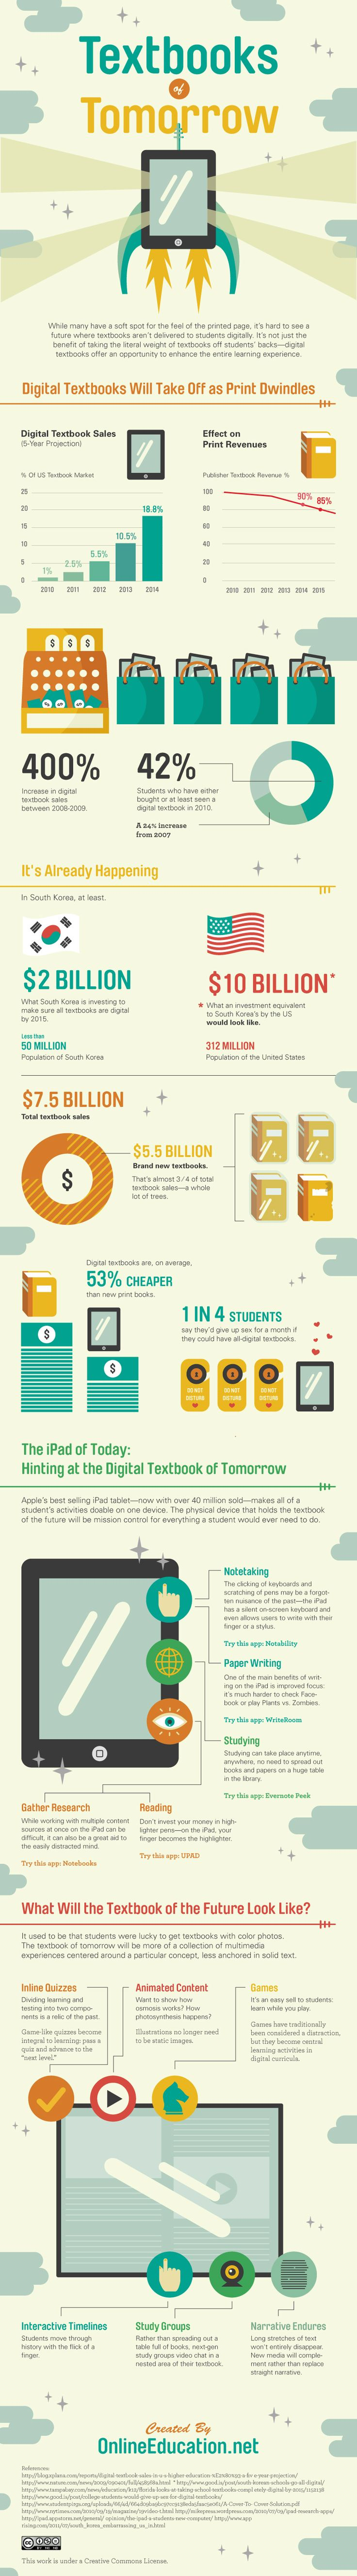 The Textbooks Of Tomorrow     #infographic #digital #ebooks